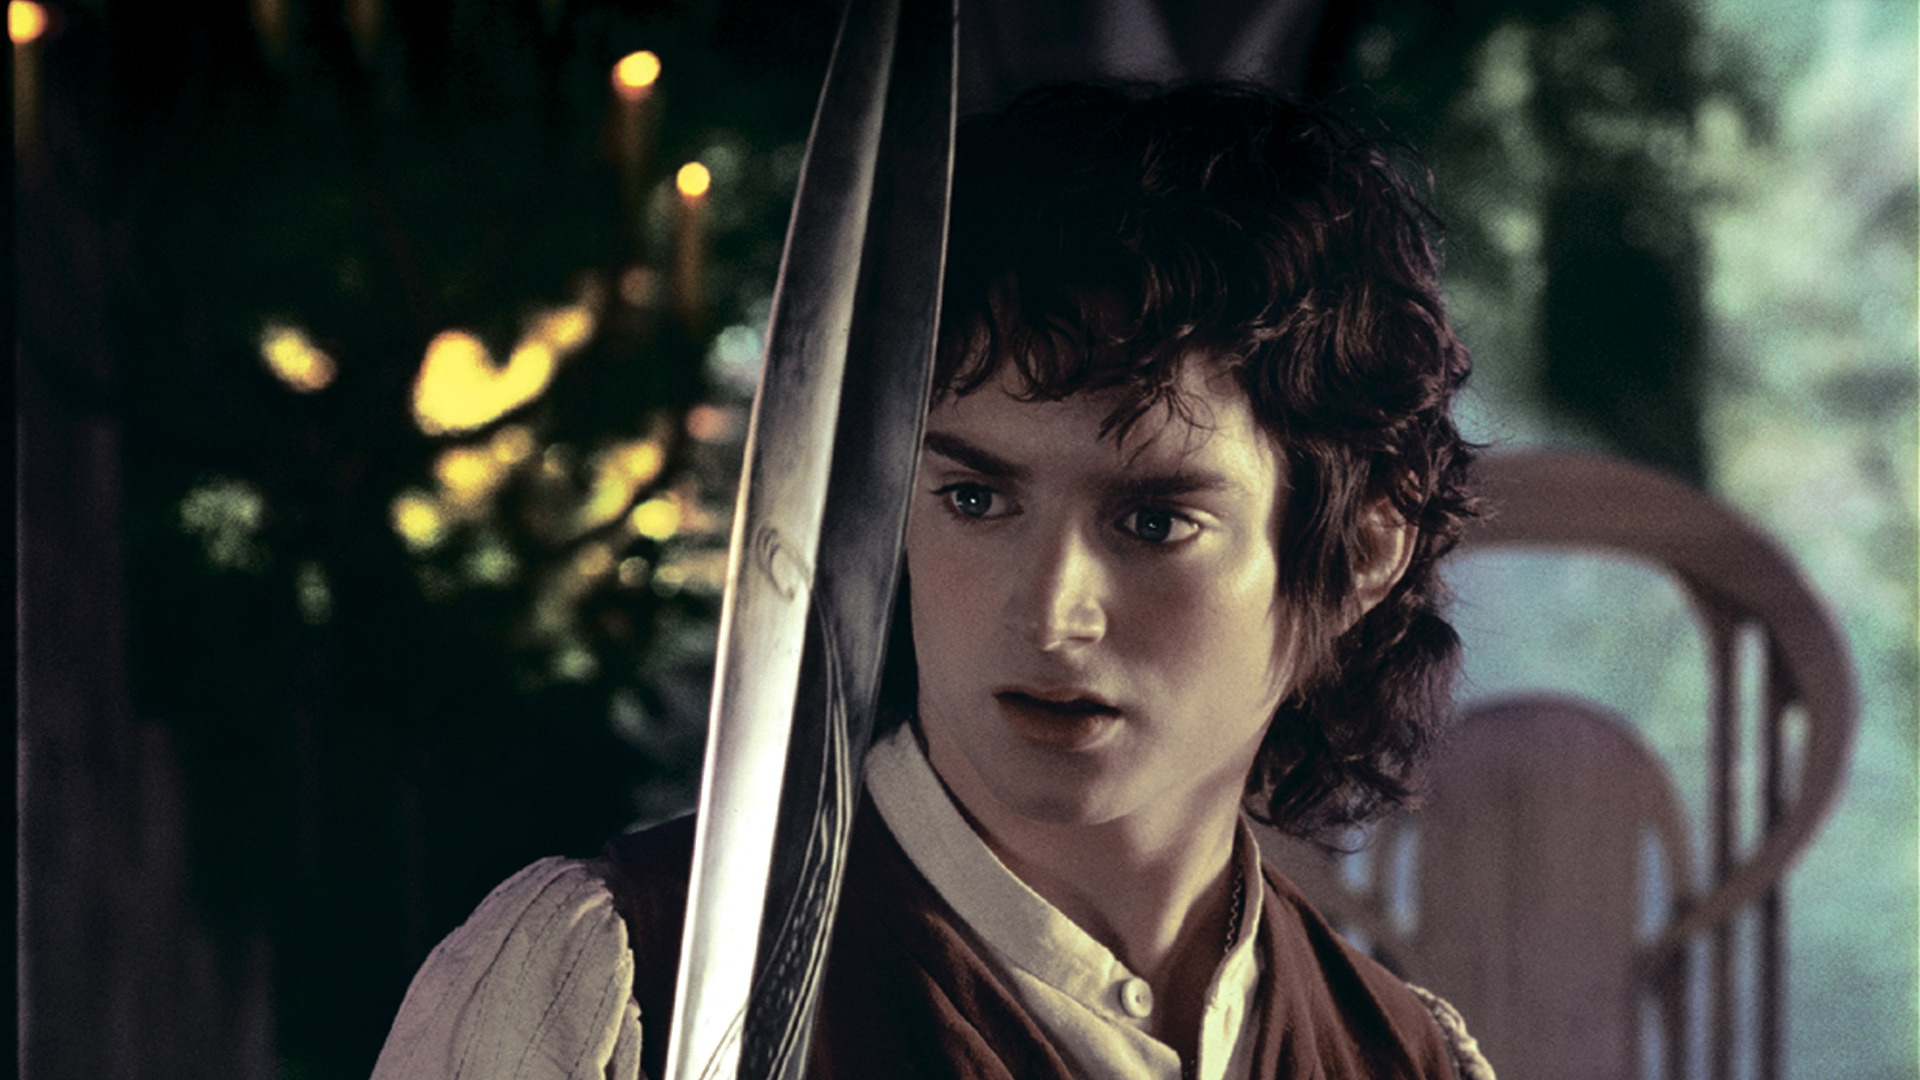 the_lord_of_the_rings_the_fellowship_of_the_ring_frodo_baggins_elijah_wood_96144_1920x1080.jpg